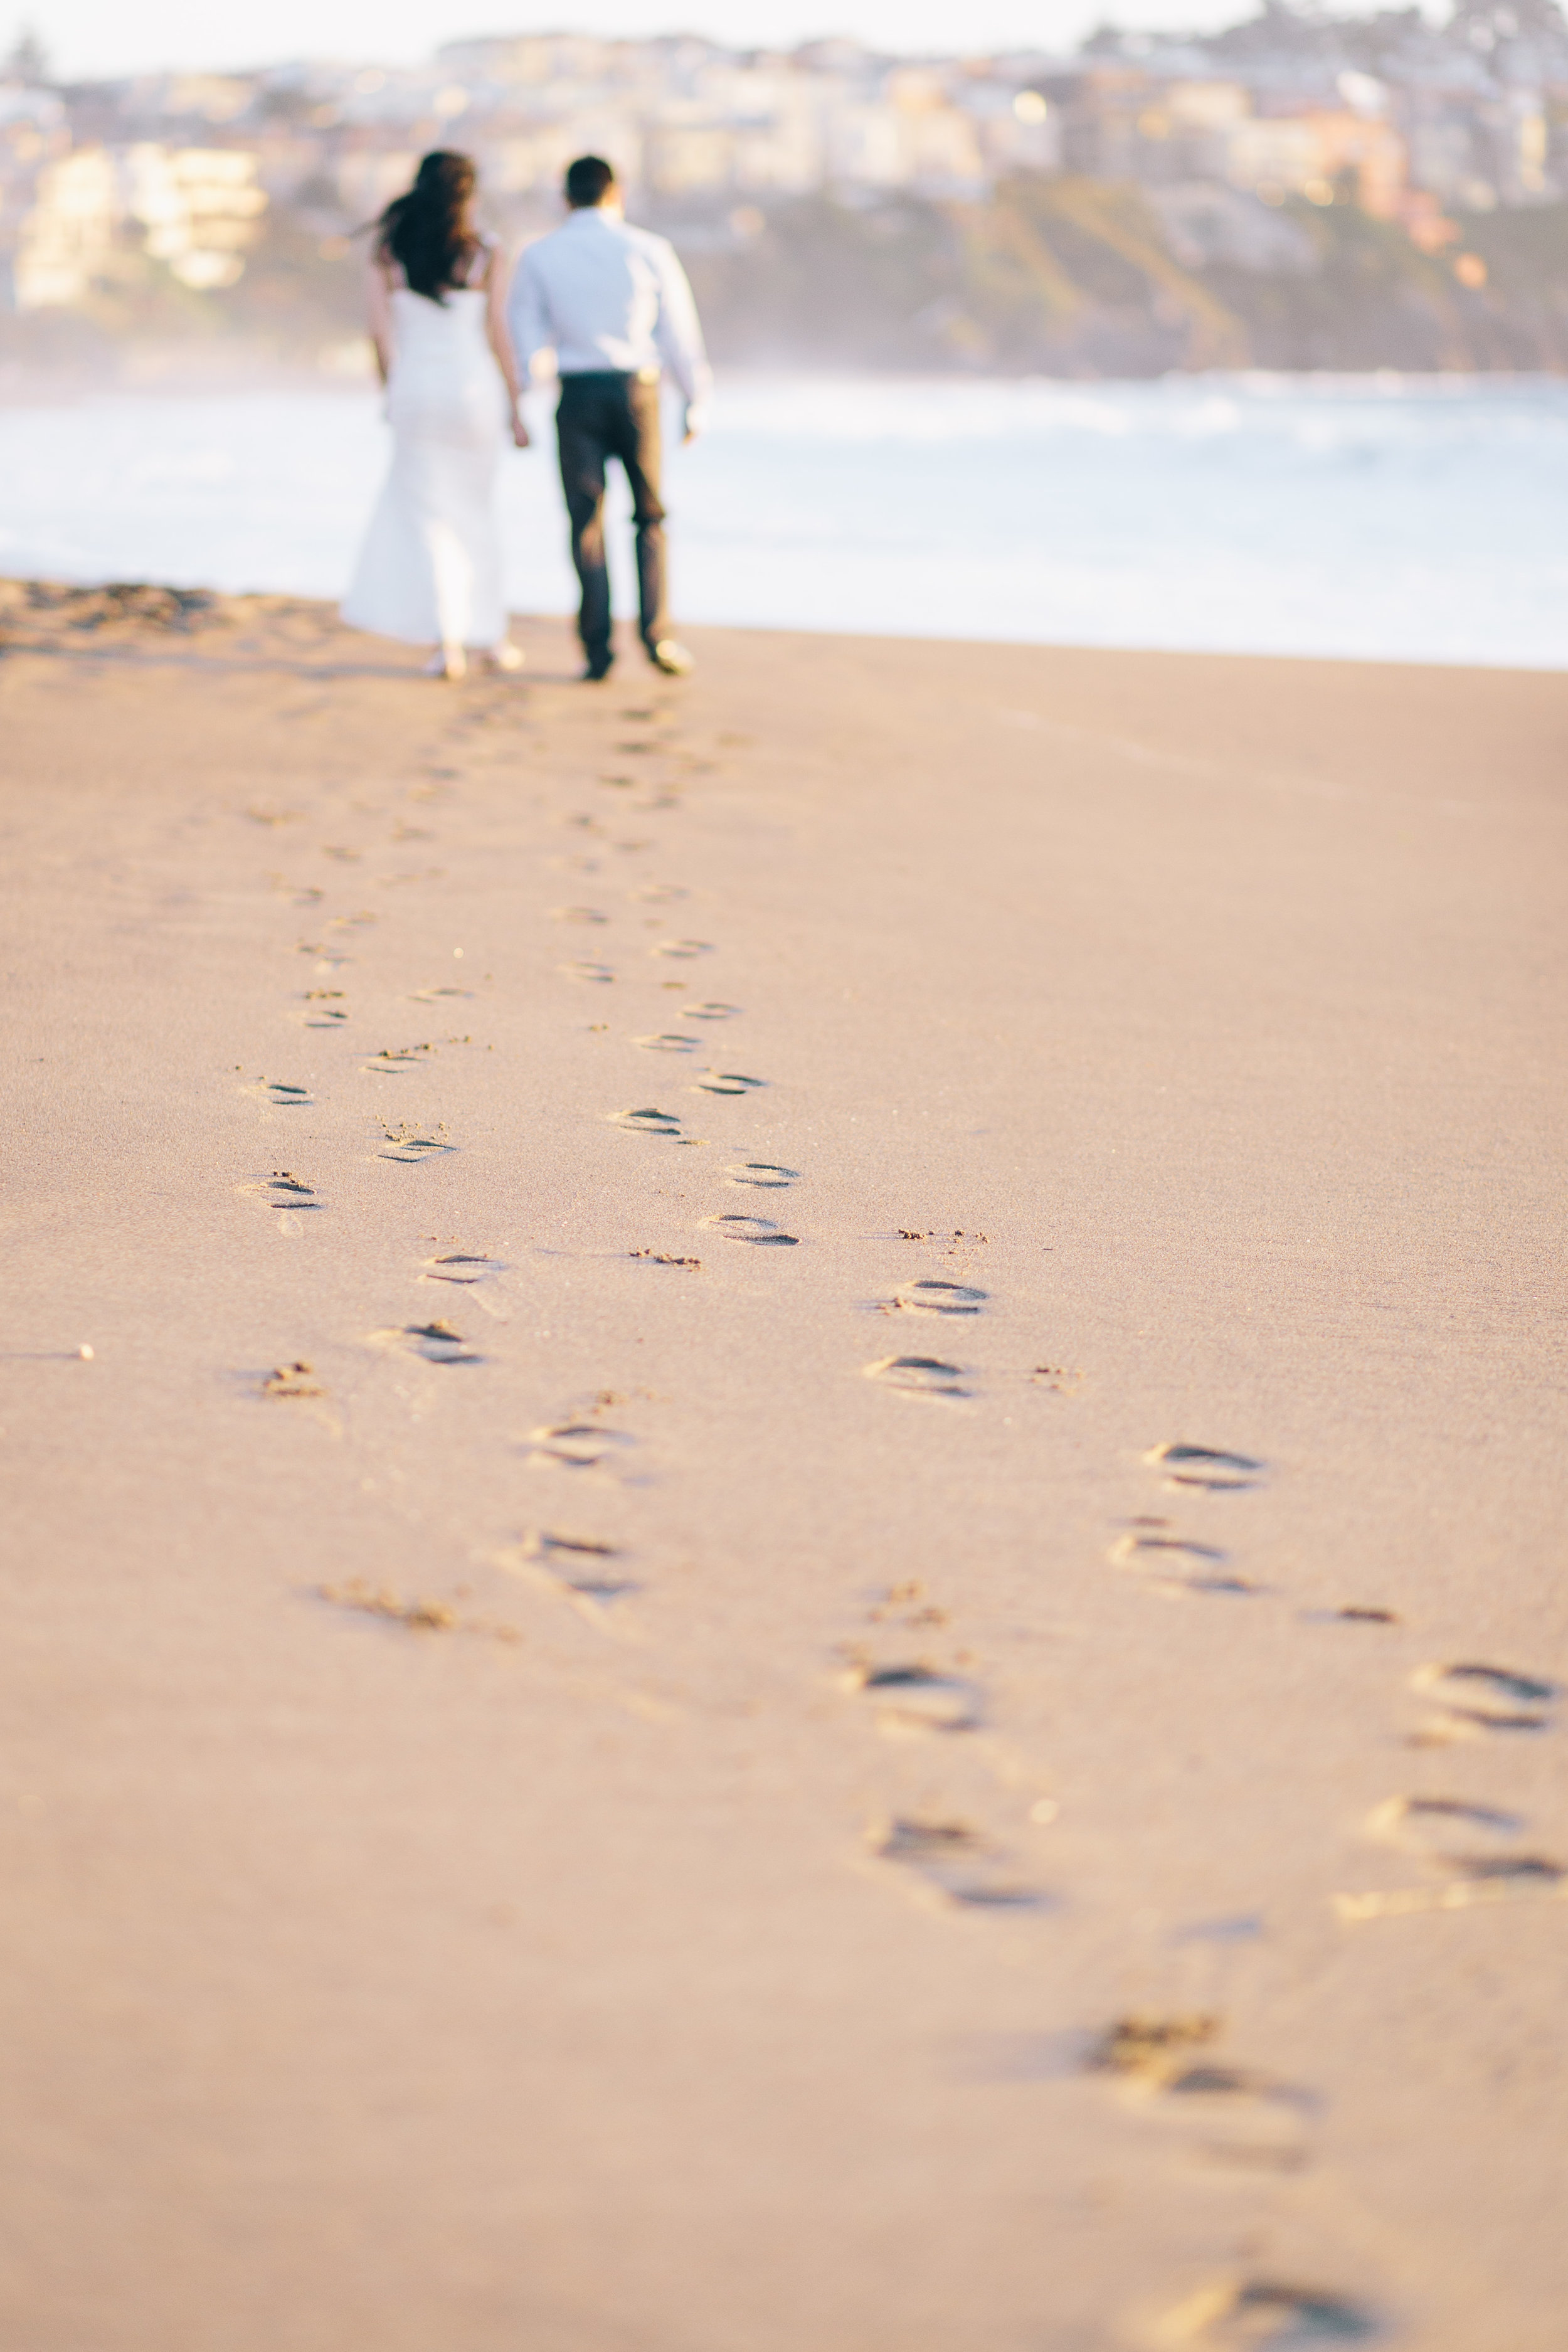 Best Engagement Photo Locations in San Francisco - Baker Beach Engagement Photos by JBJ Pictures (19).jpg